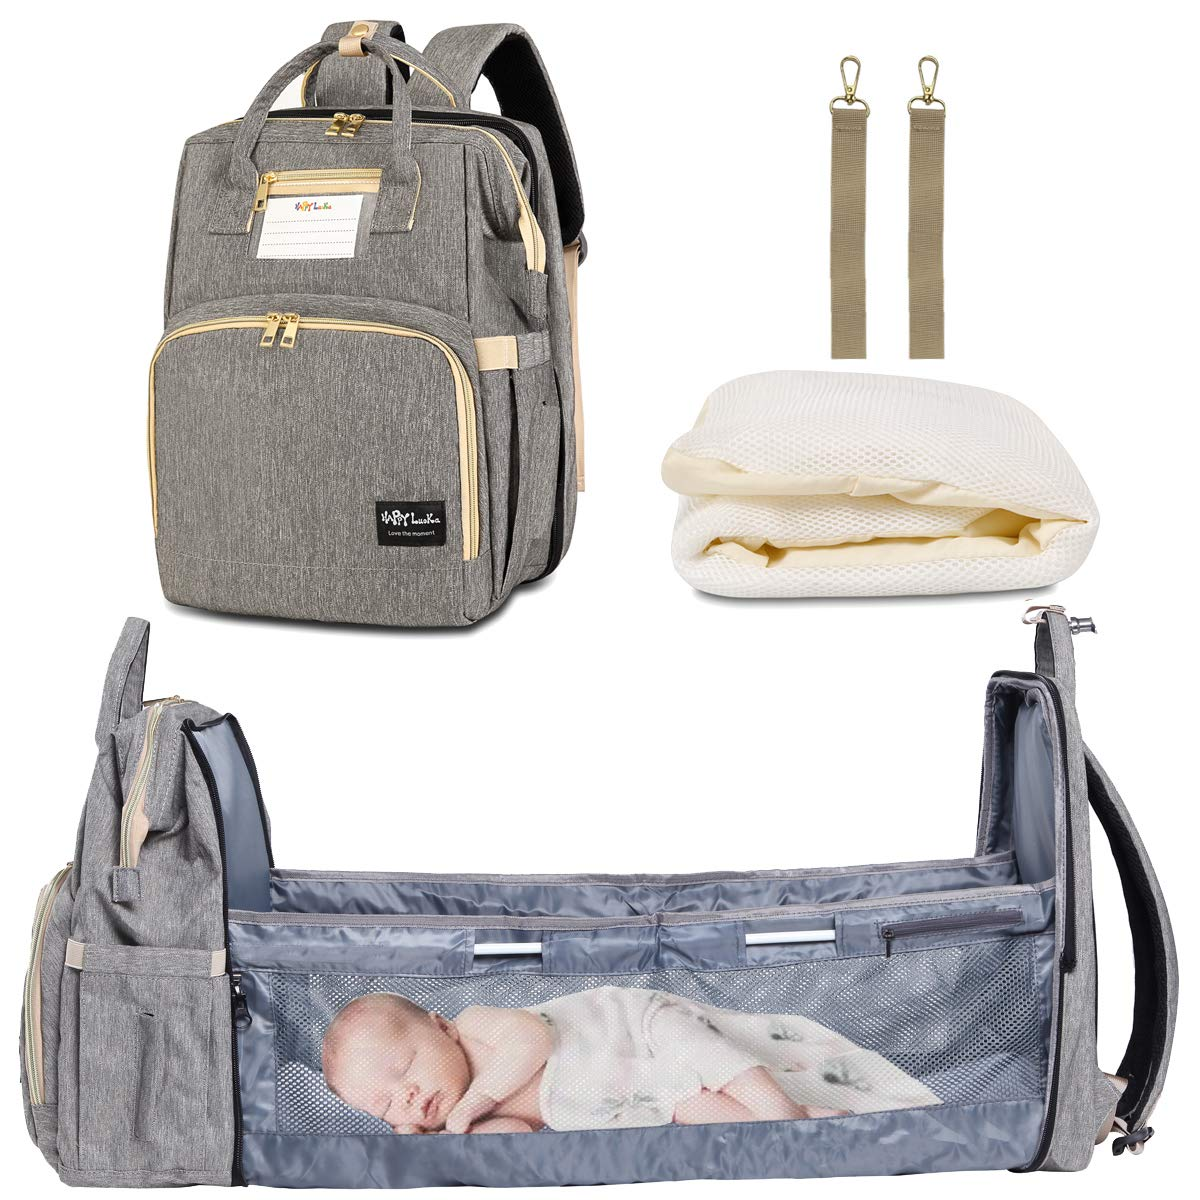 Baby Nappy Changing Bag Portable Folding Crib Diaper Backpack Stroller Straps